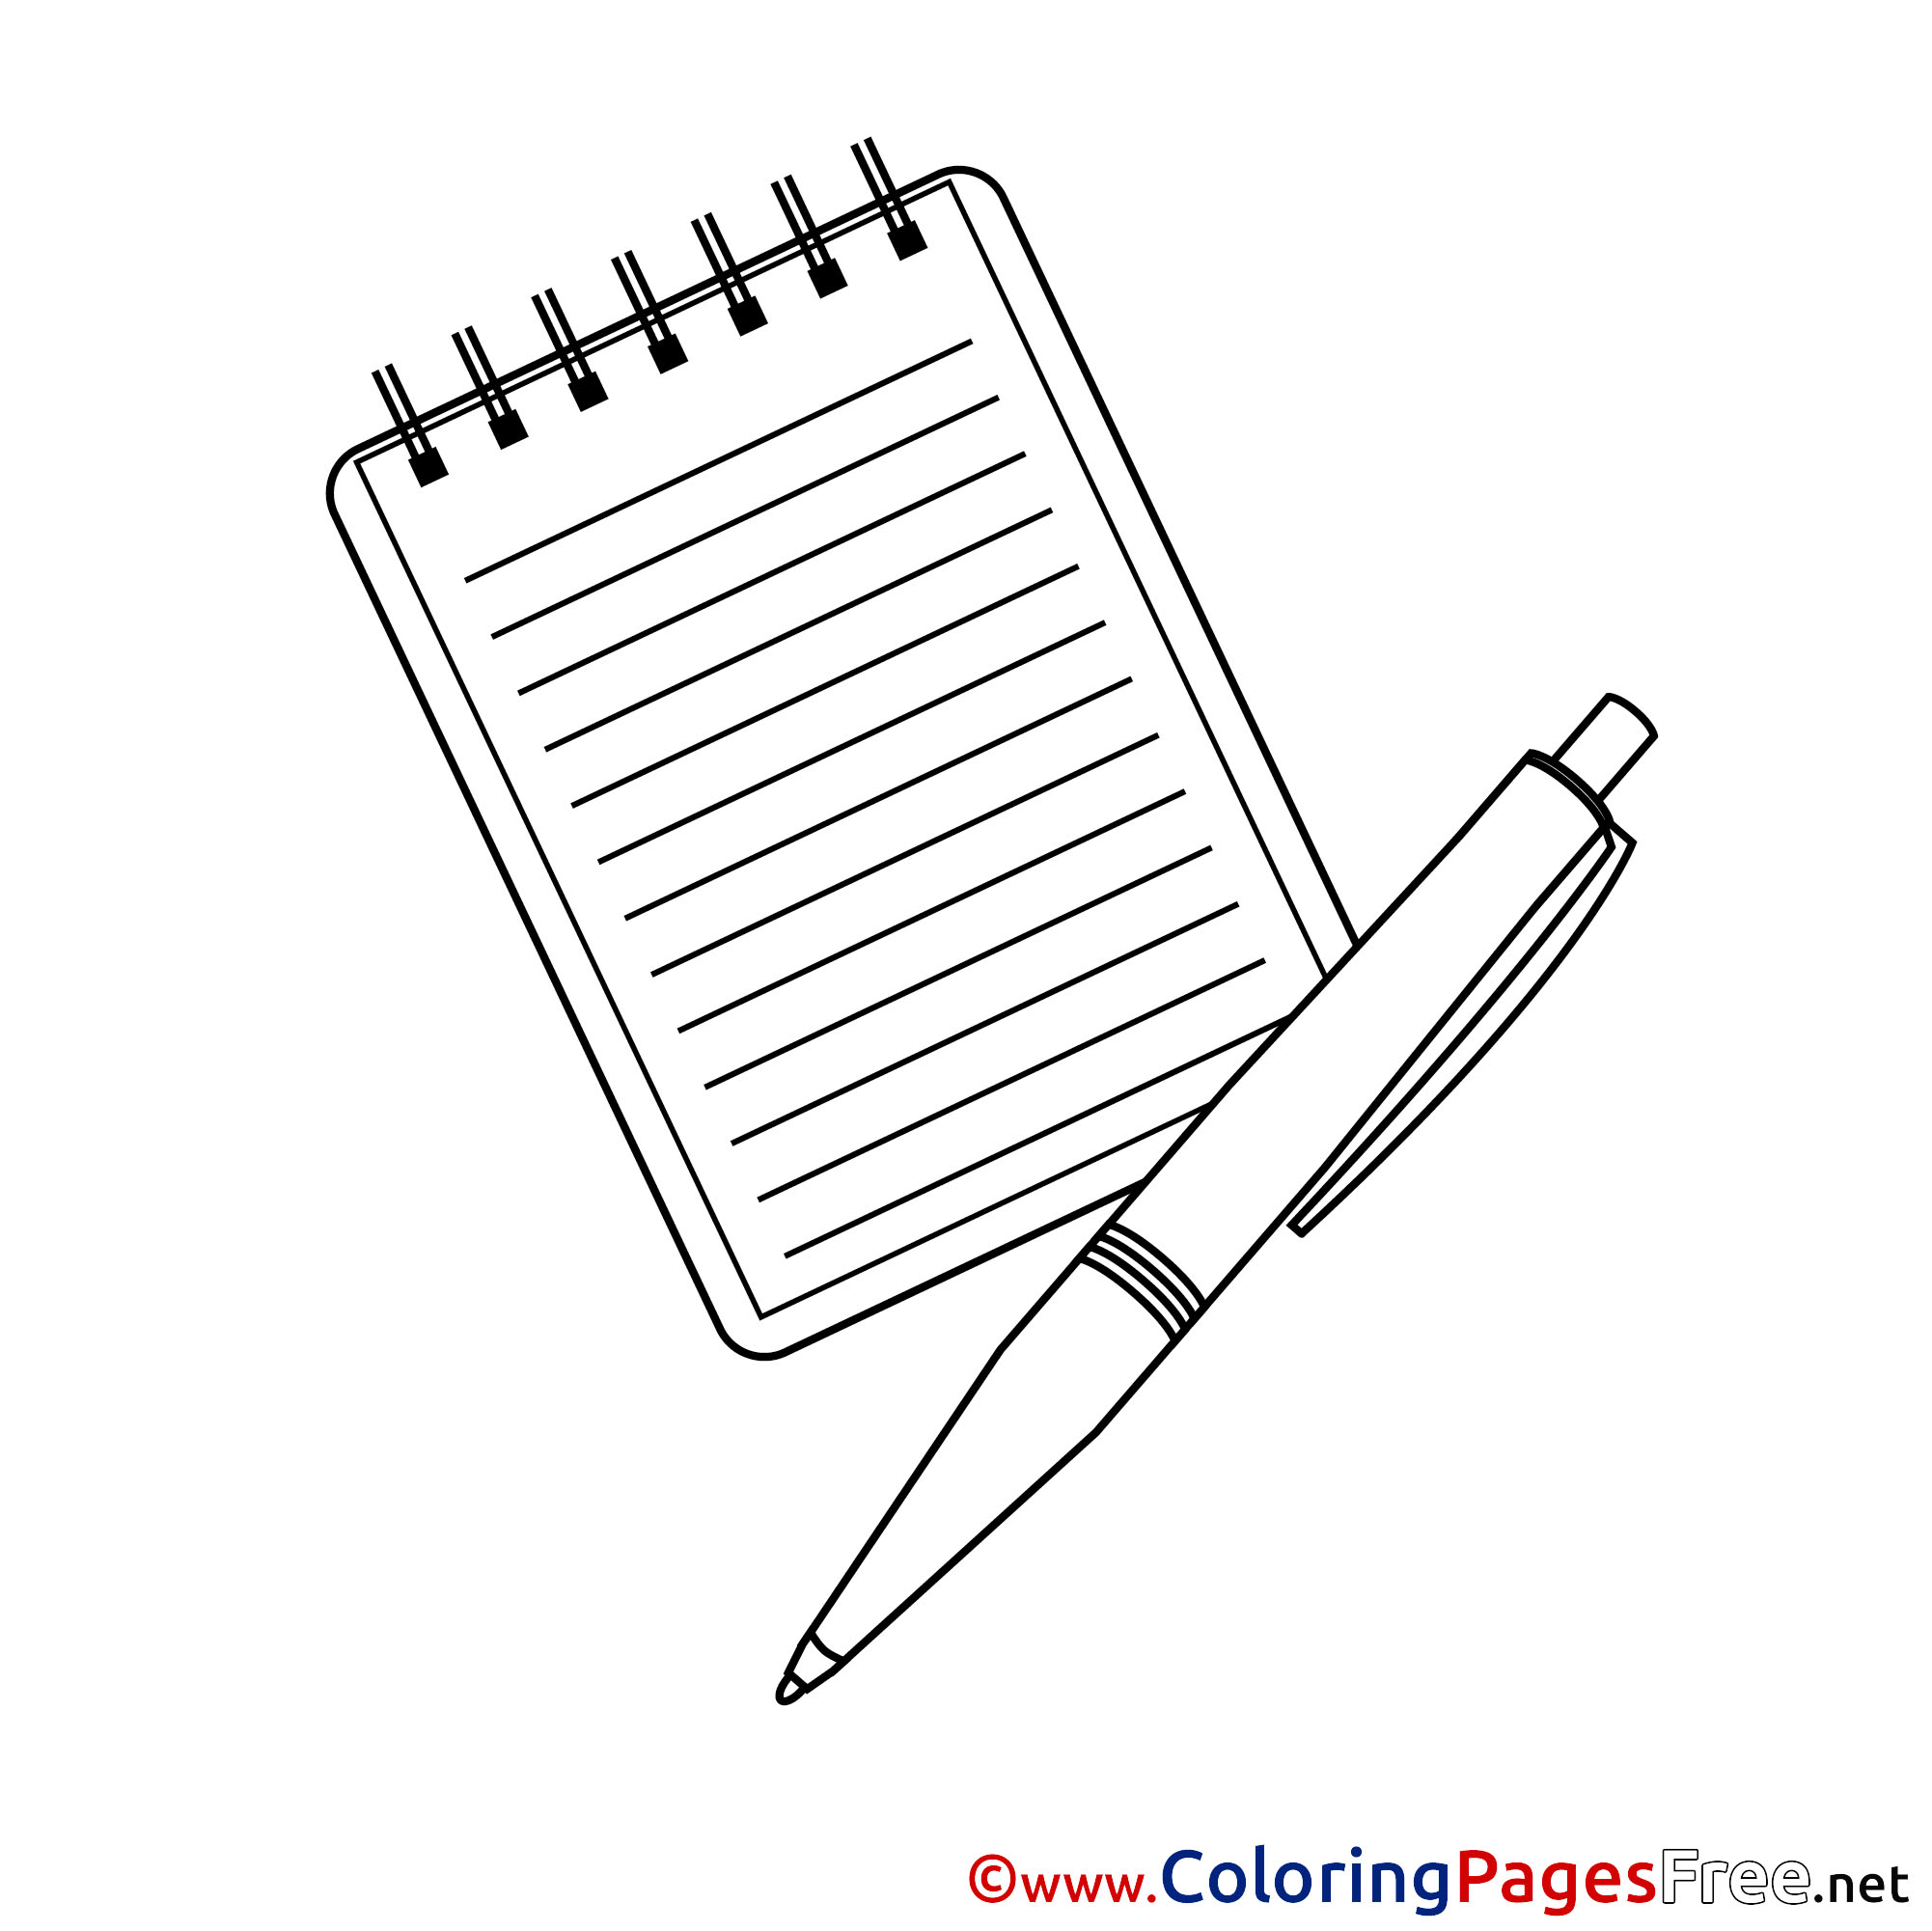 notepad coloring pages - photo#5